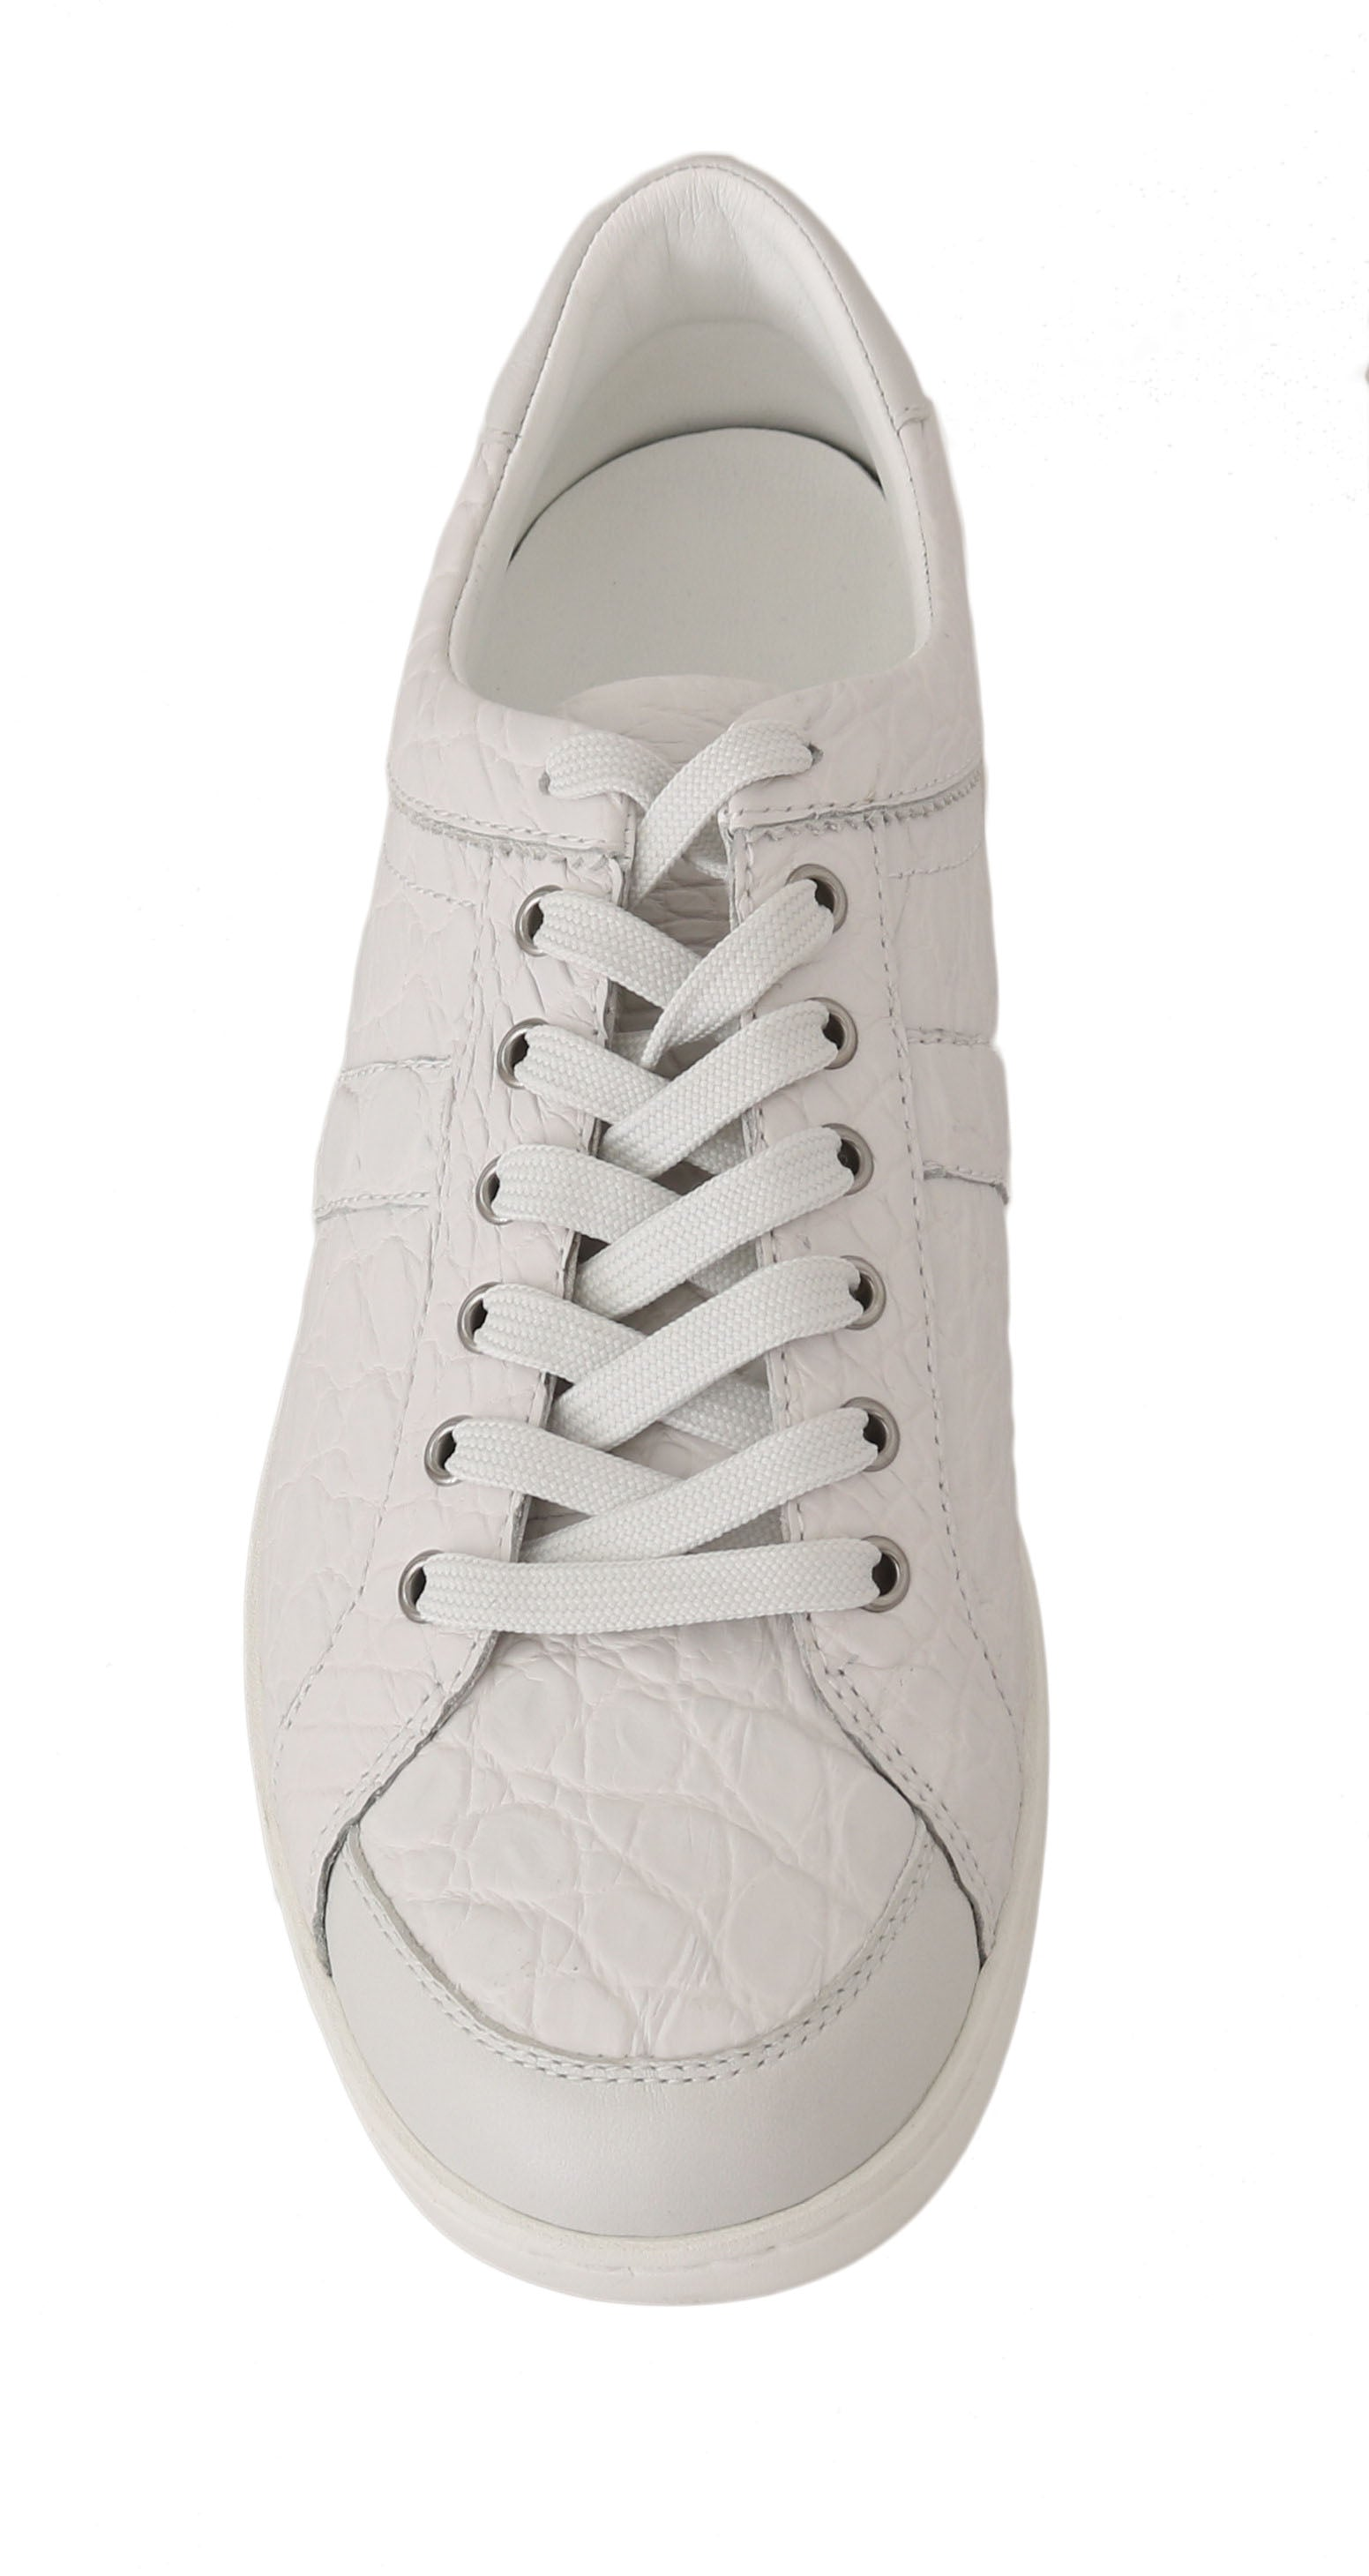 White Caiman Crocodile Sneaker Shoes